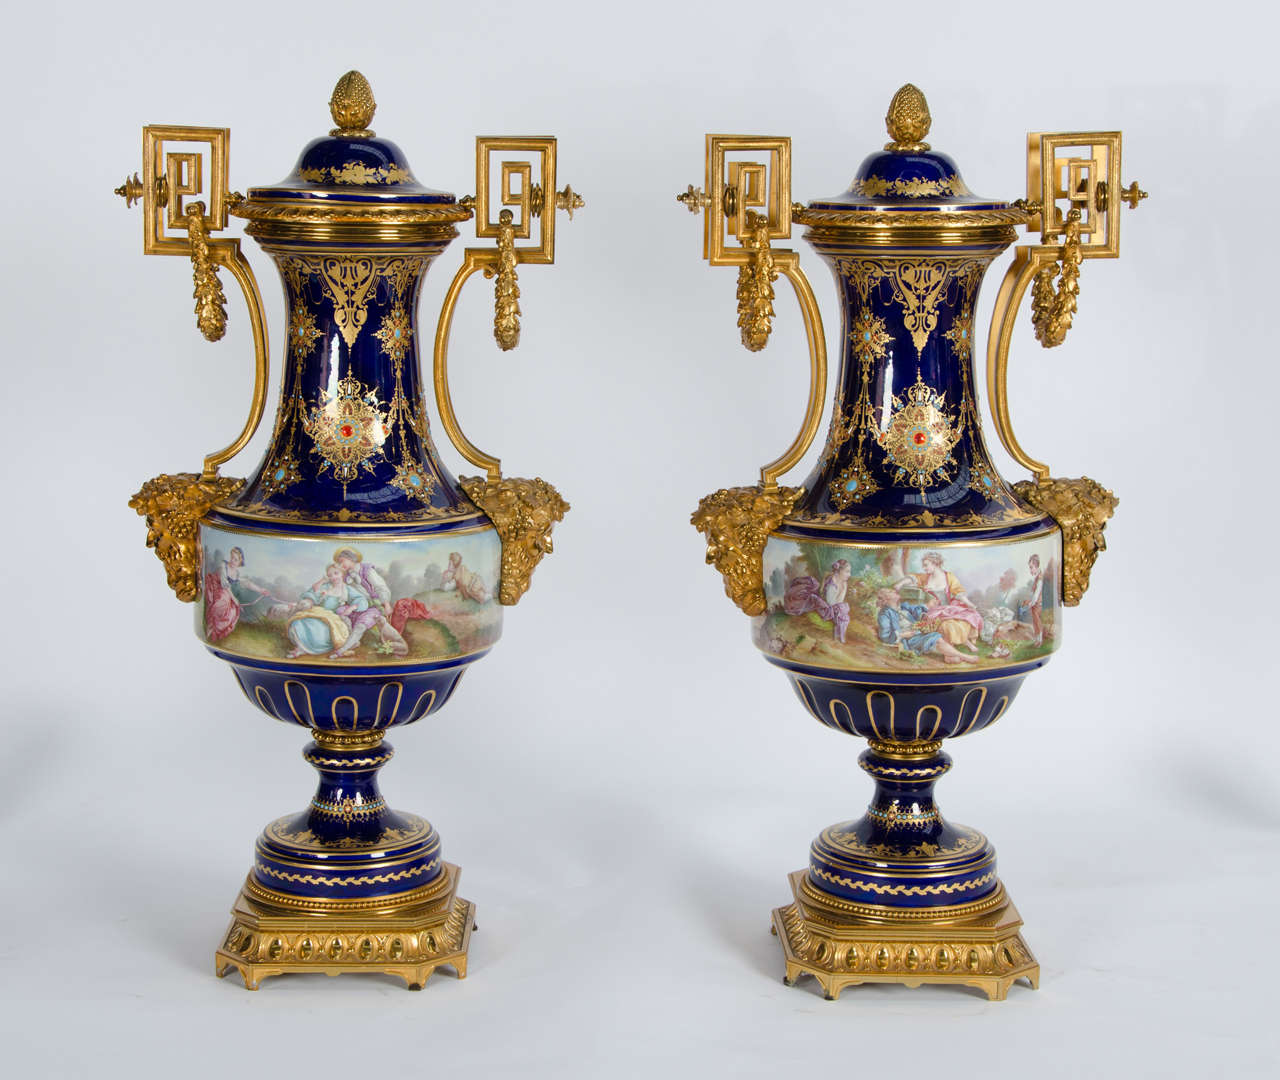 Pair Of Antique Sevres Vases At 1stdibs